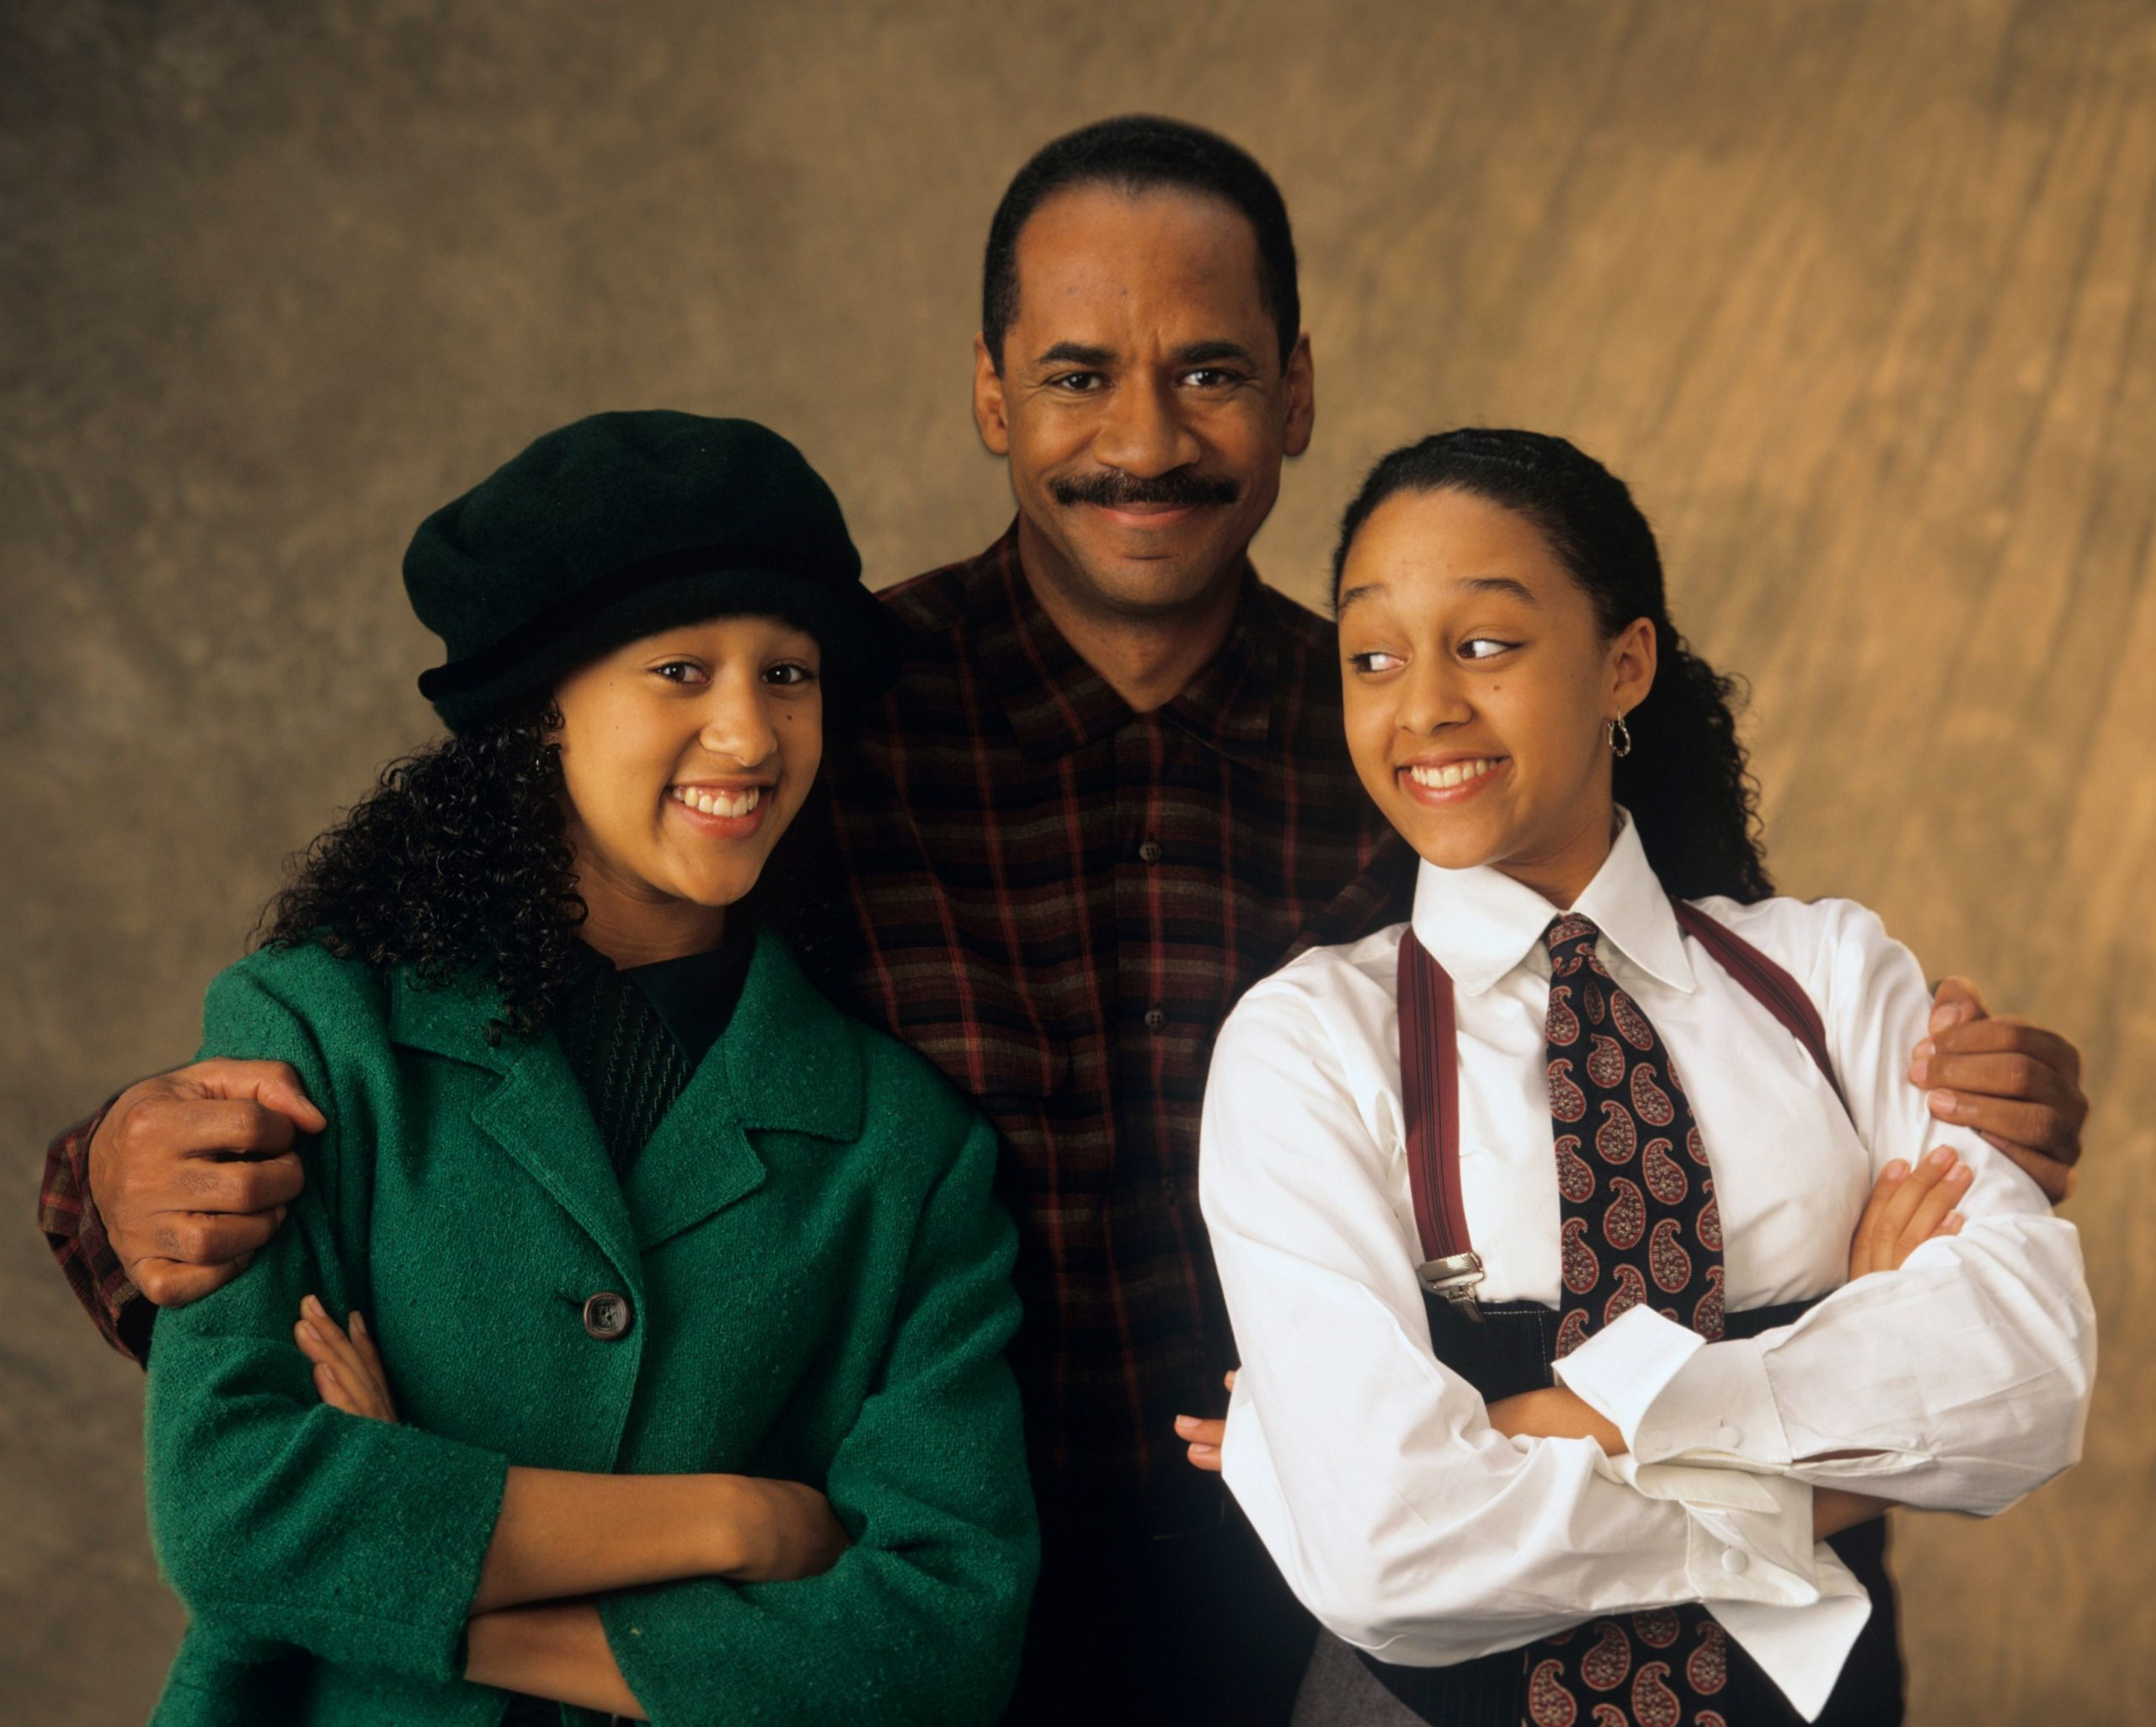 Tim Reid Has 2 Children with her ex Wife The Reid family is close-knit!